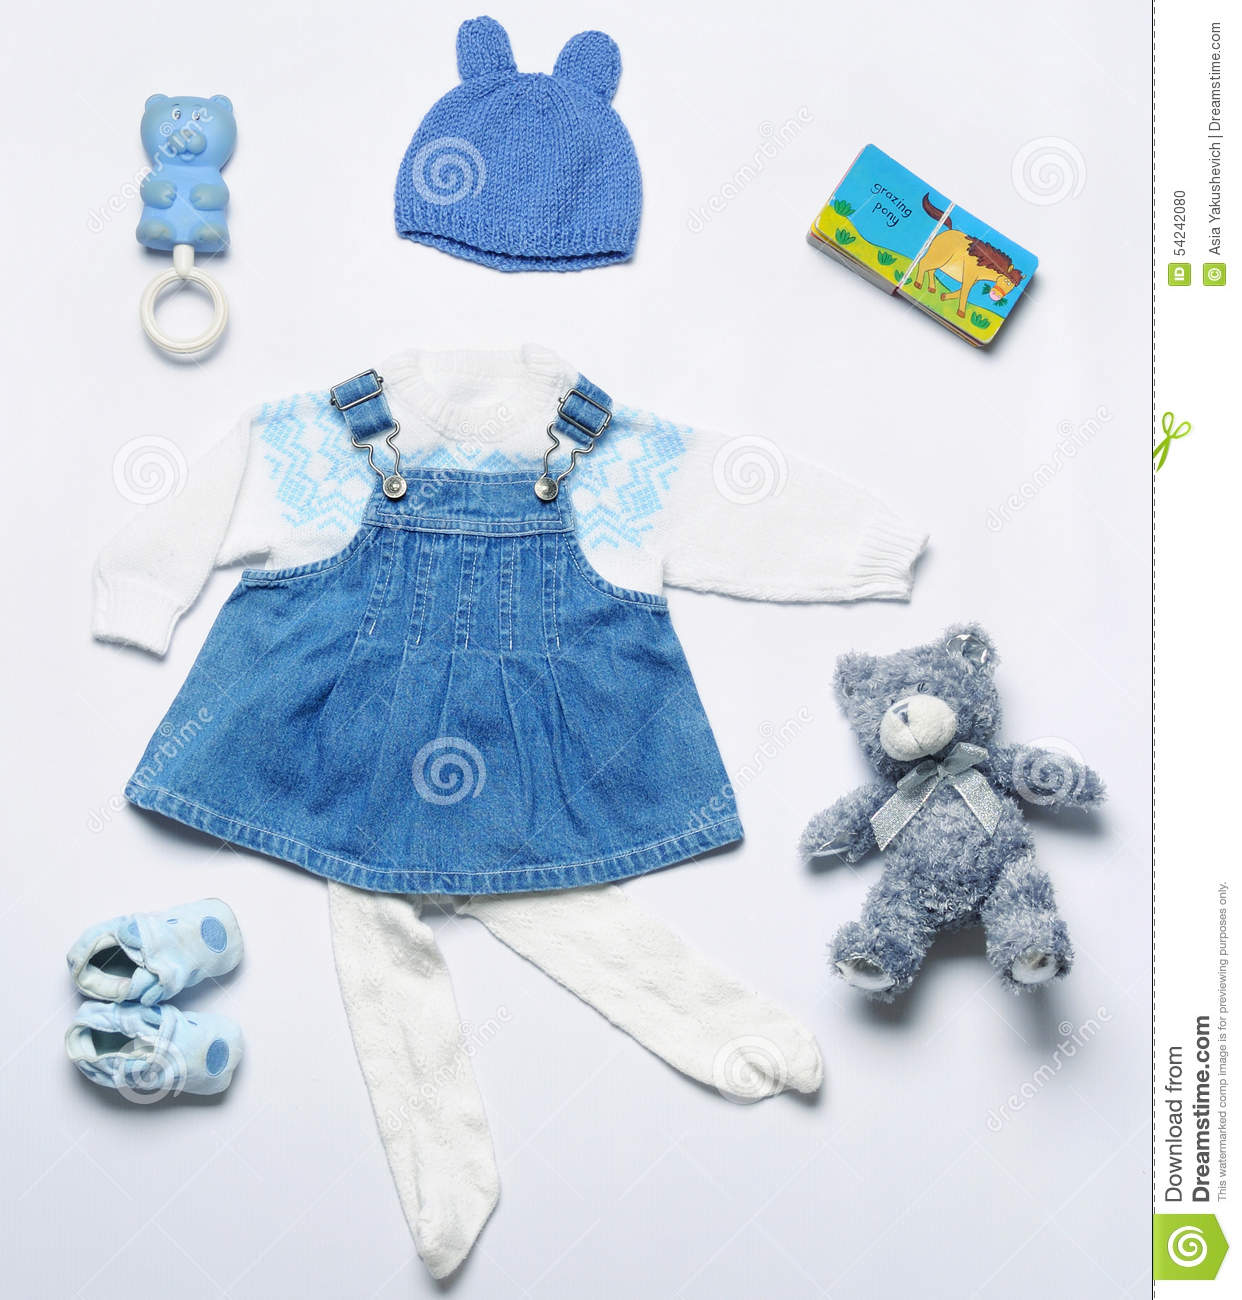 Shop our wide selection of baby girl boutique clothing from designer brands like haute baby and mud pie clothing! You will find all the newborn baby girl clothes & accessories you have been looking for like ruffled baby bloomers, pettiskirts, handmade baby headbands and mud pie baby .